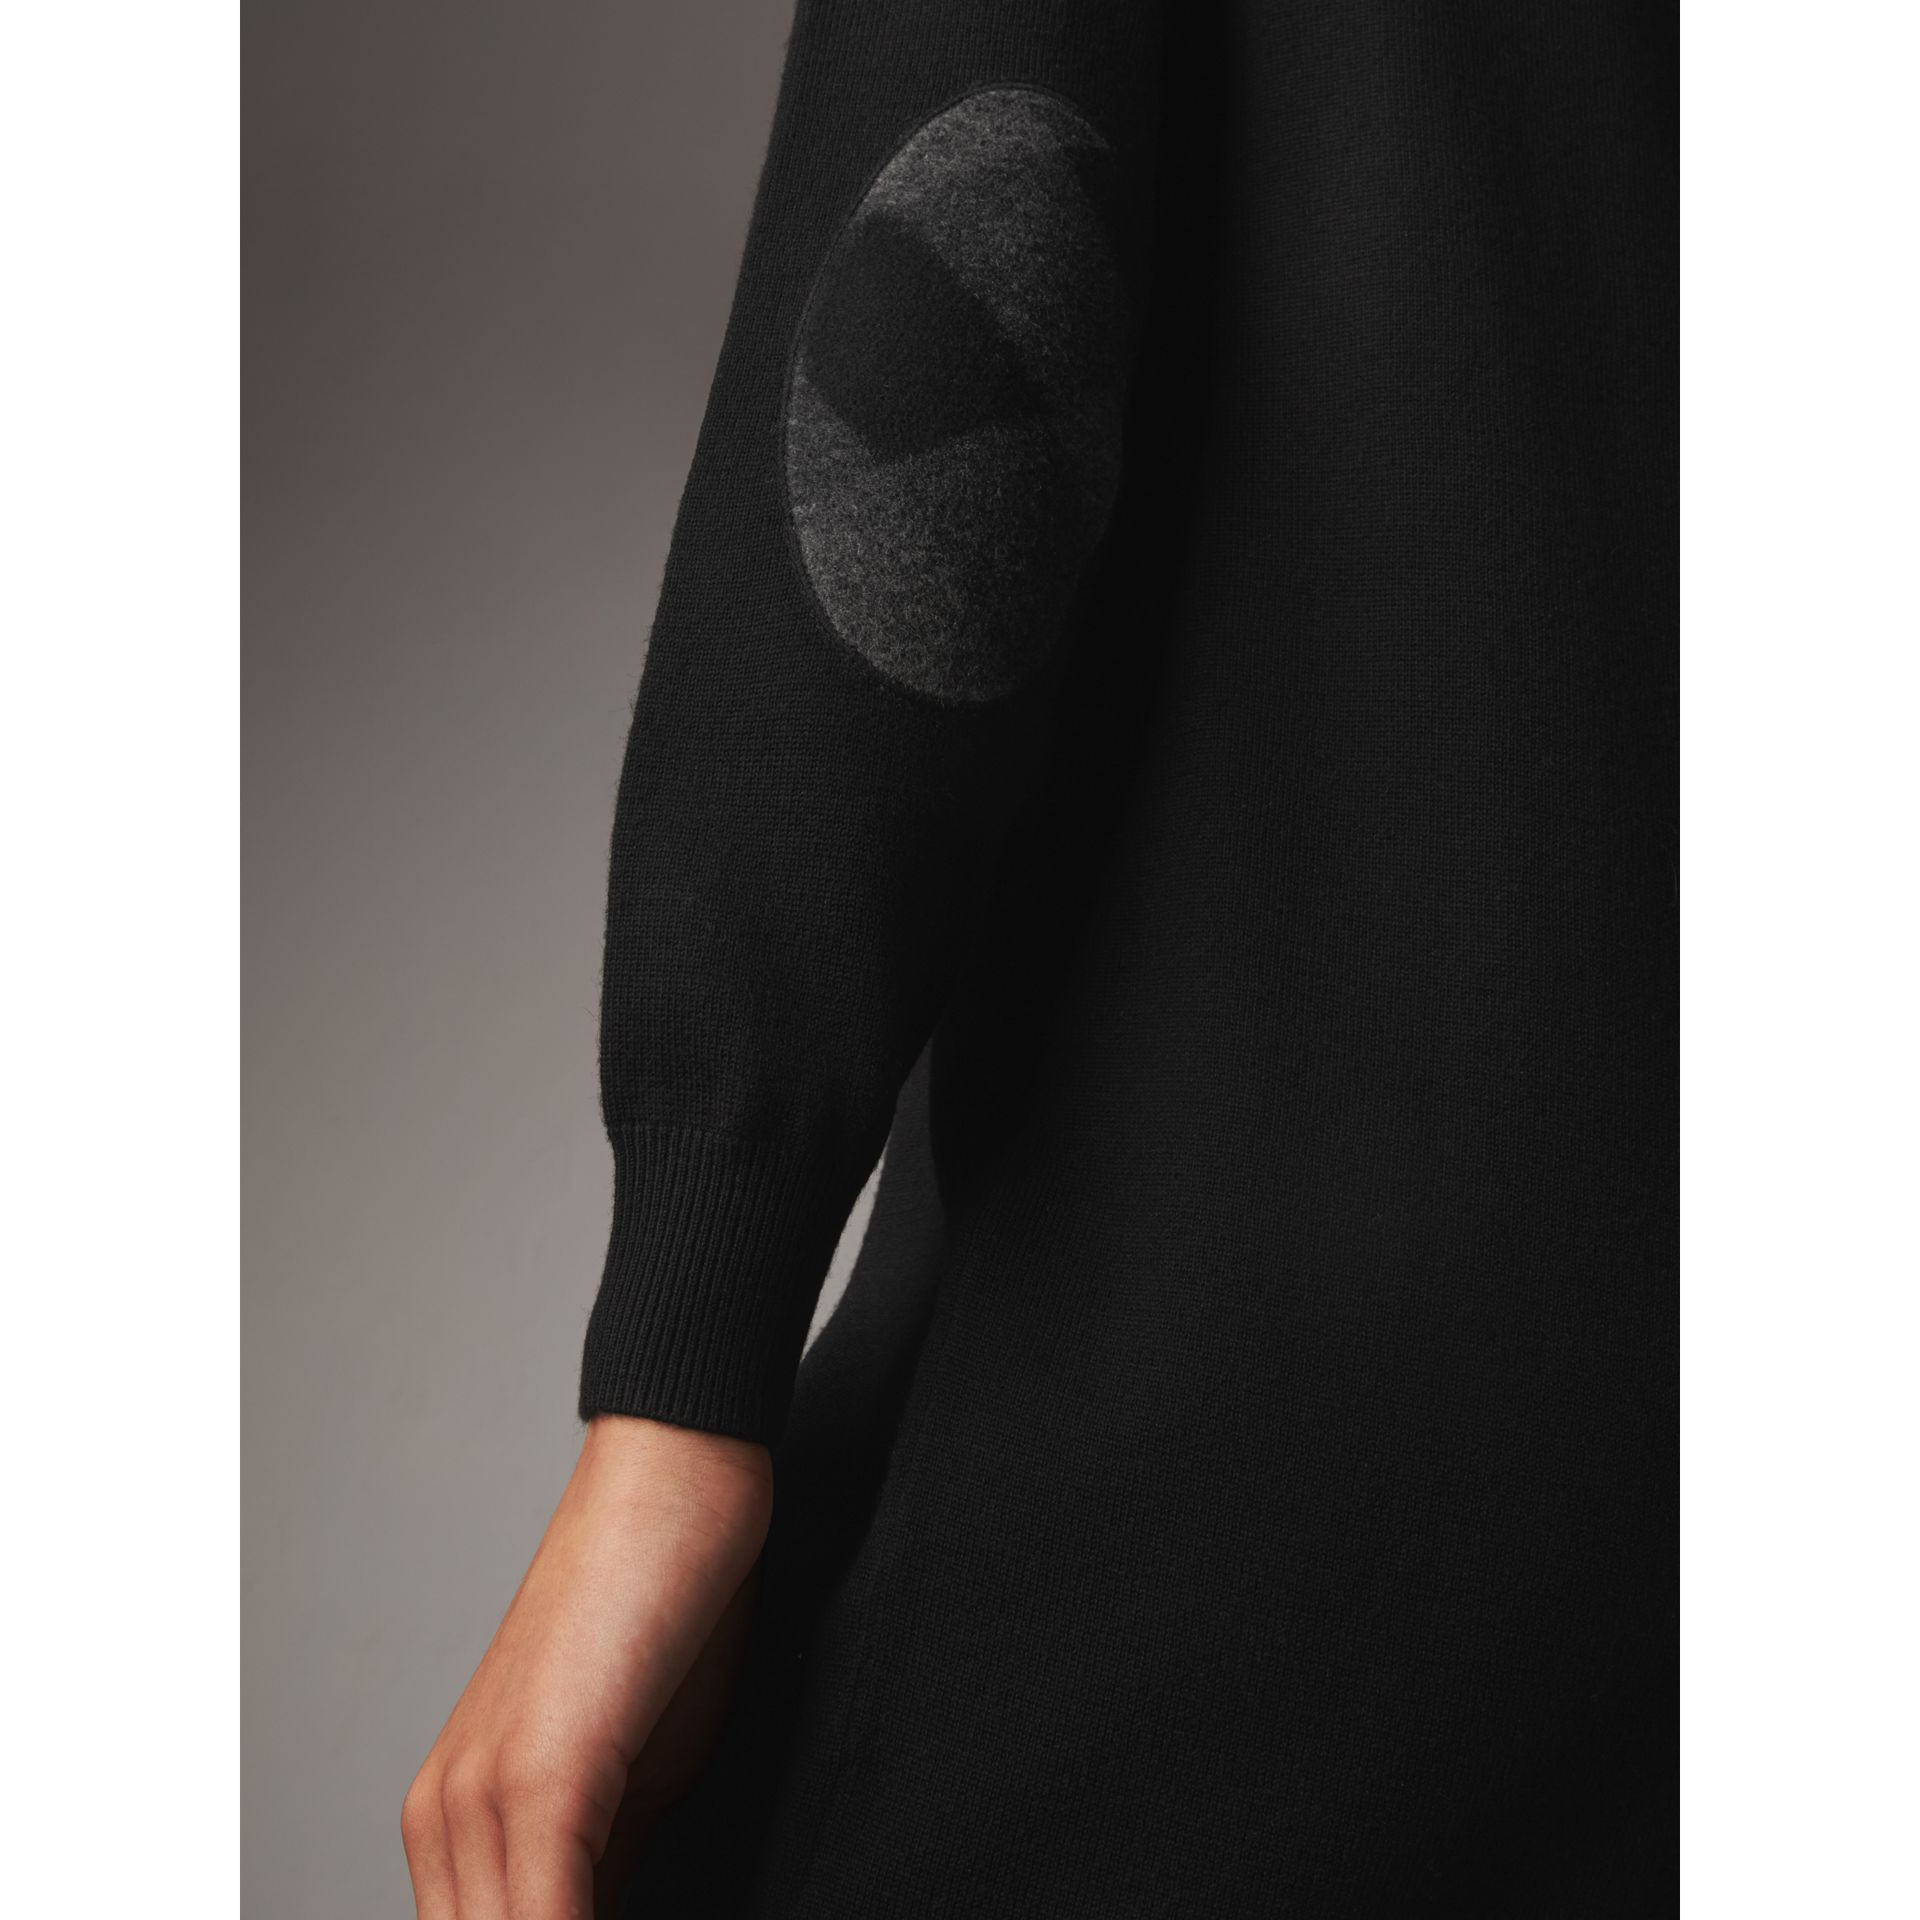 Check Elbow Detail Merino Wool Sweater Dress in Black - Women | Burberry United States - gallery image 1